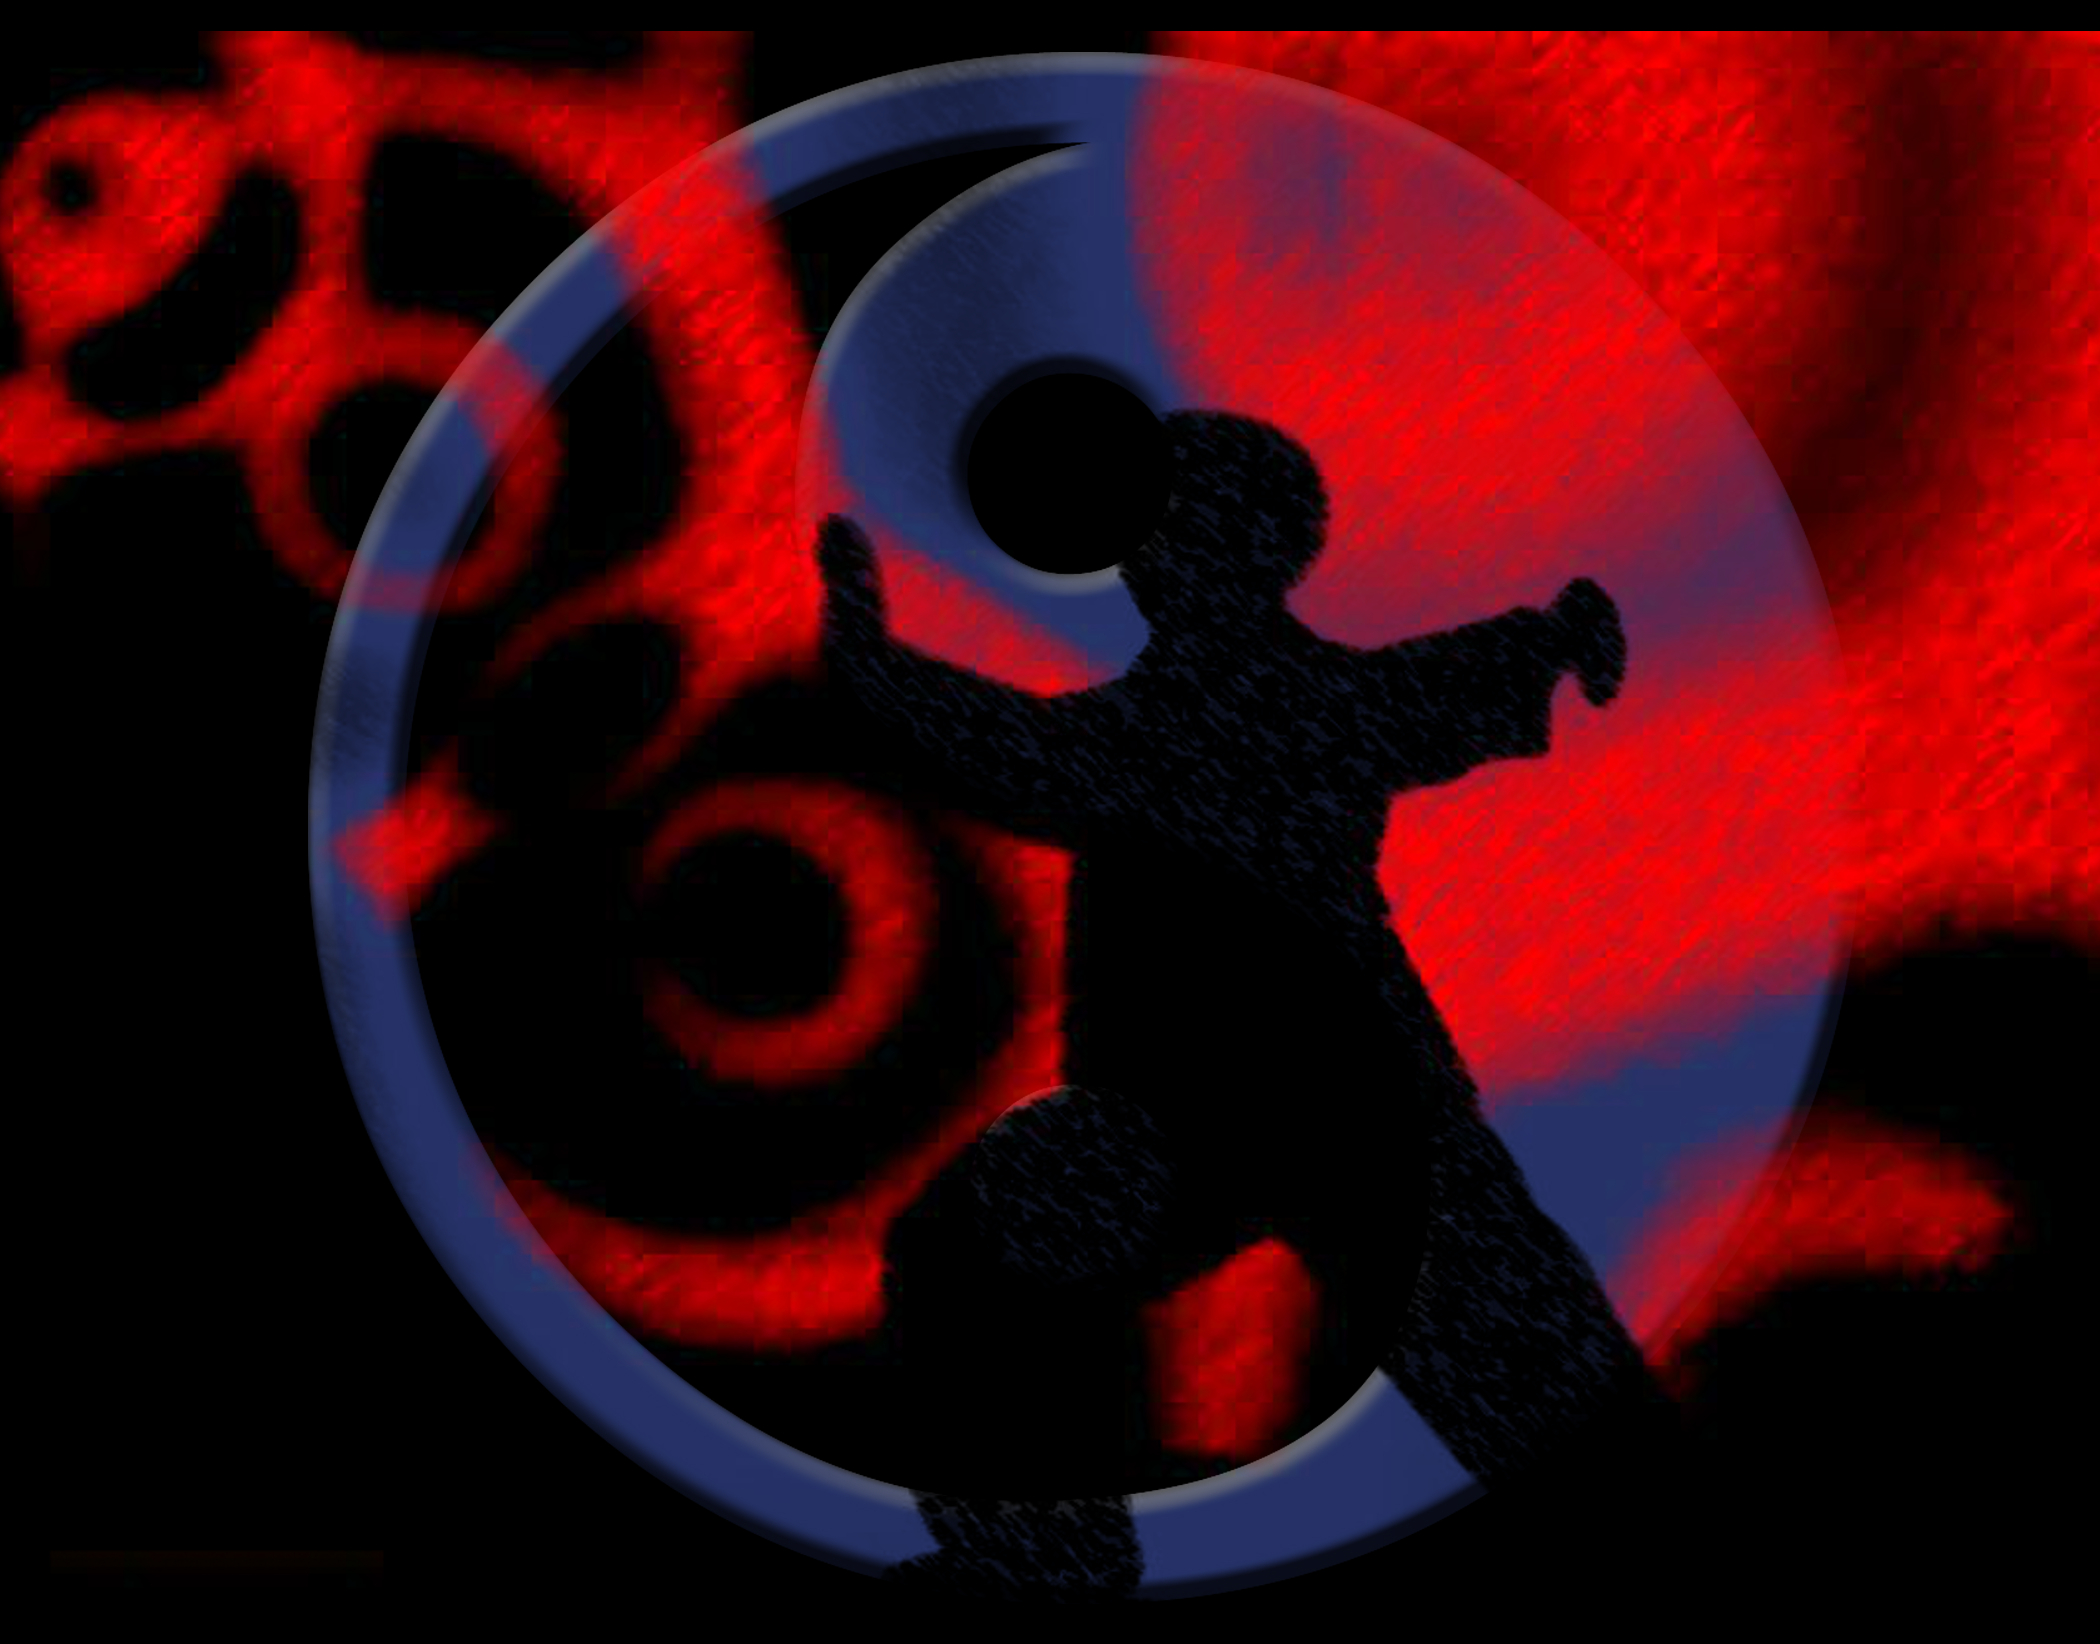 Tao Of Jeet Kune Do Bruce Lee And The Training Of The Spirit